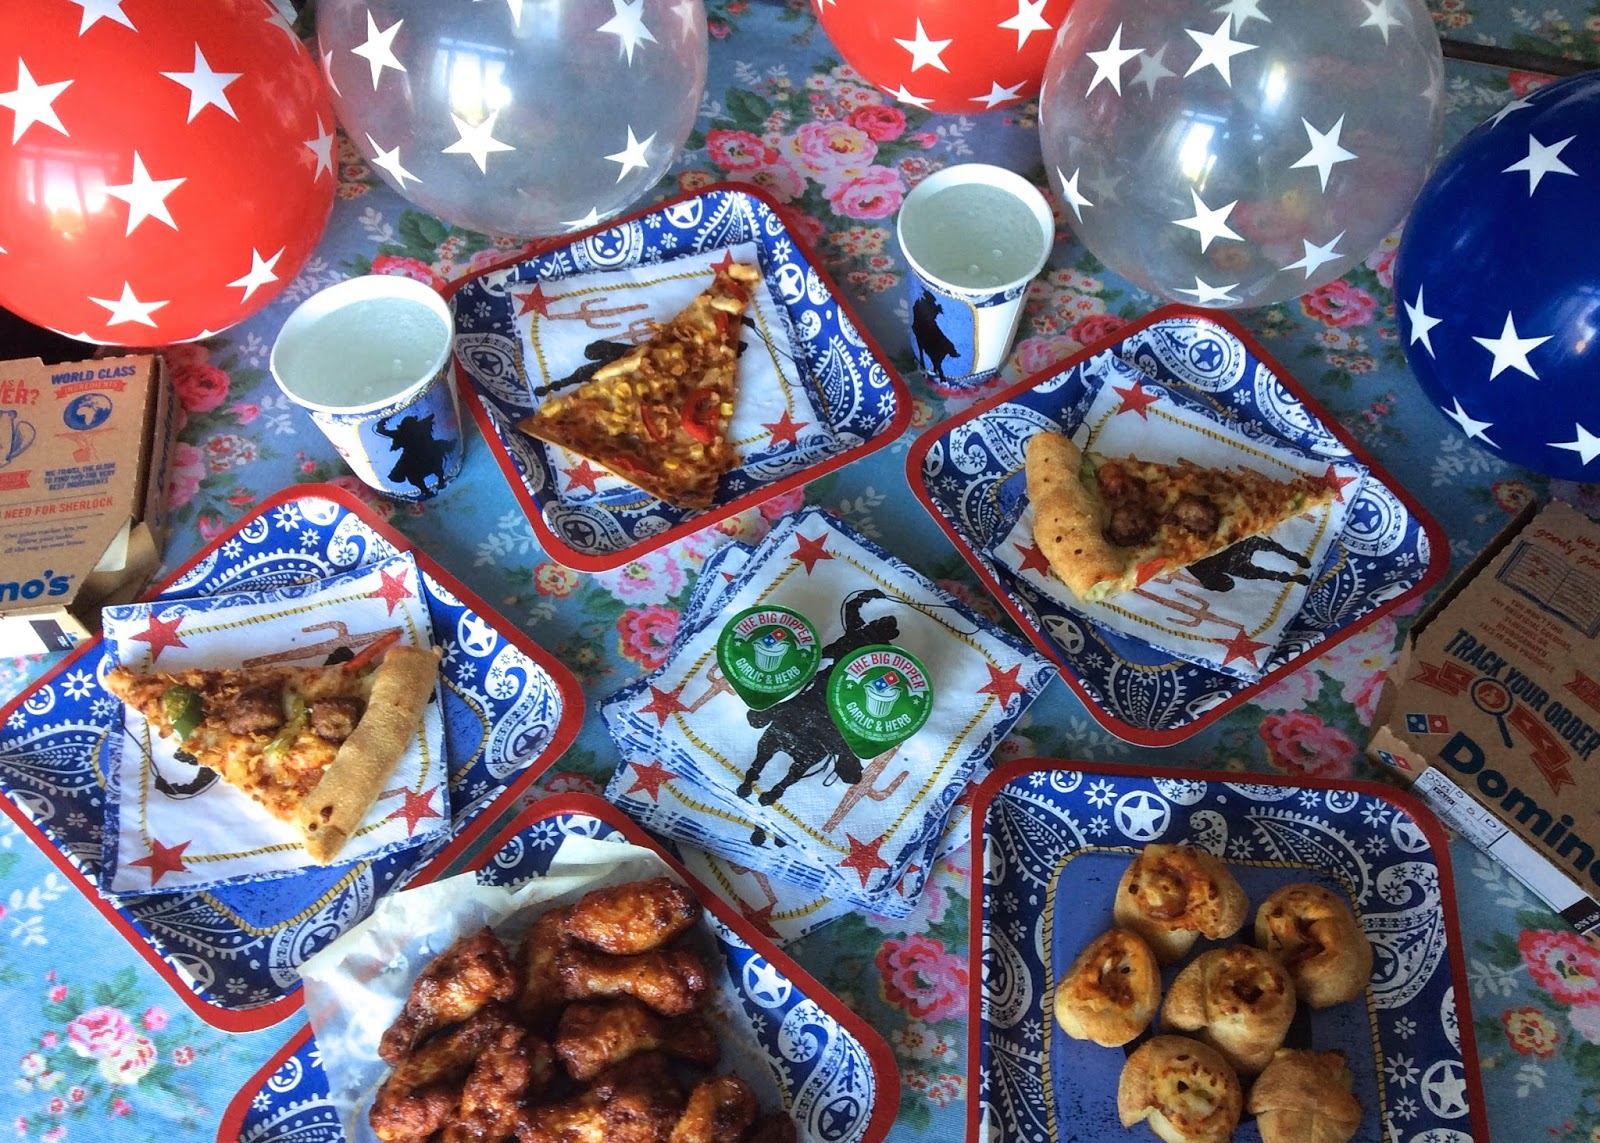 flutter and sparkle: Texas BBQ pizza party with Dominos.co.uk